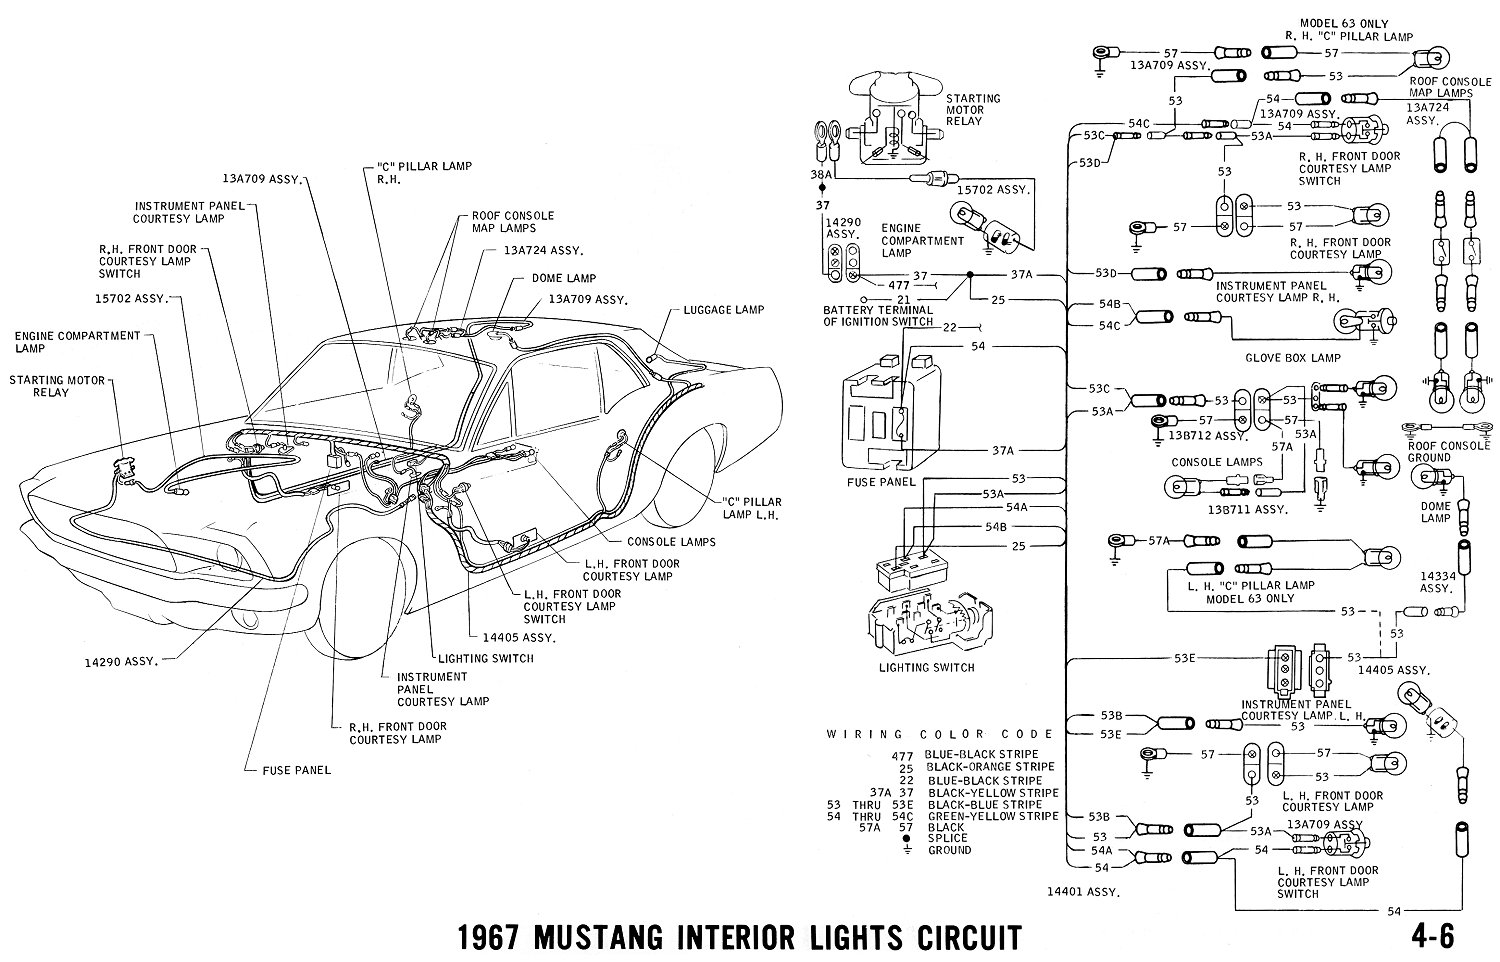 hight resolution of 1967 mustang wiring diagram free wiring diagram for you u2022 1964 impala wiring diagram free 1967 mustang wiring diagram free